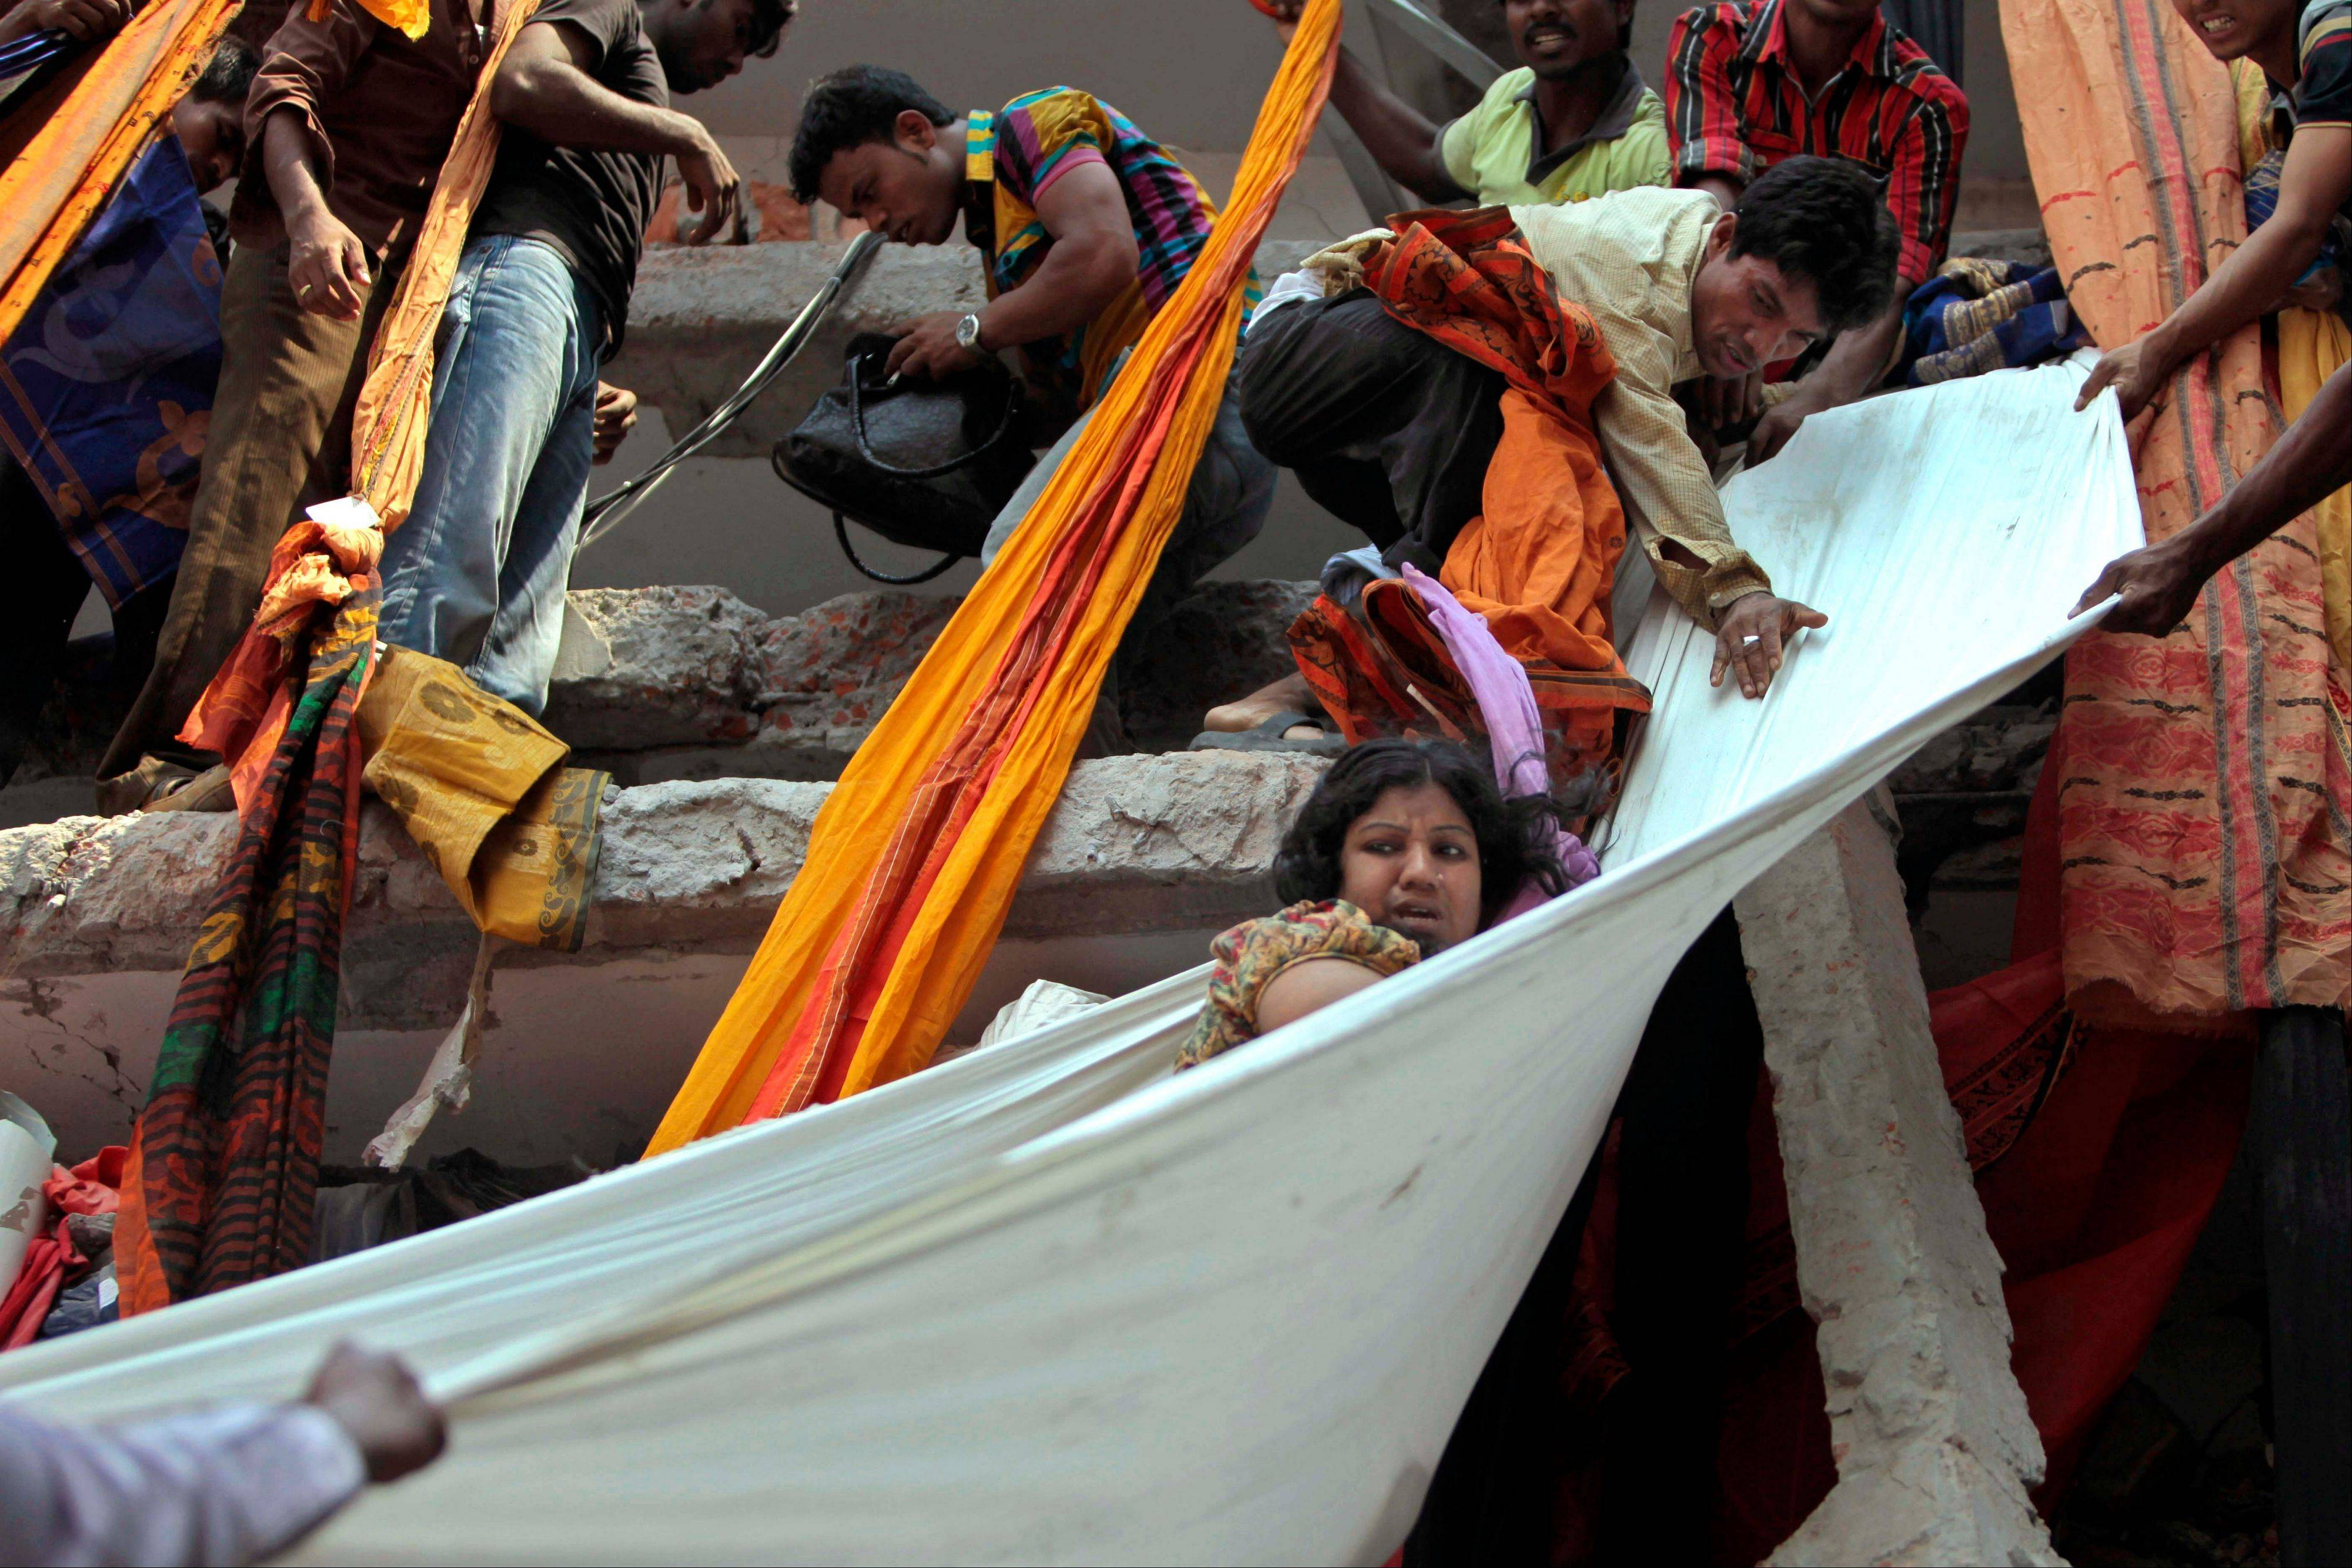 Rescue workers use pieces of clothes to bring down a survivor after an eight-story building housing several garment factories collapsed in Savar, near Dhaka, Bangladesh, Wednesday, April 24, 2013. The building collapsed near Bangladesh's capital Wednesday morning, killing dozens of people and trapping many more in the rubble, officials said.